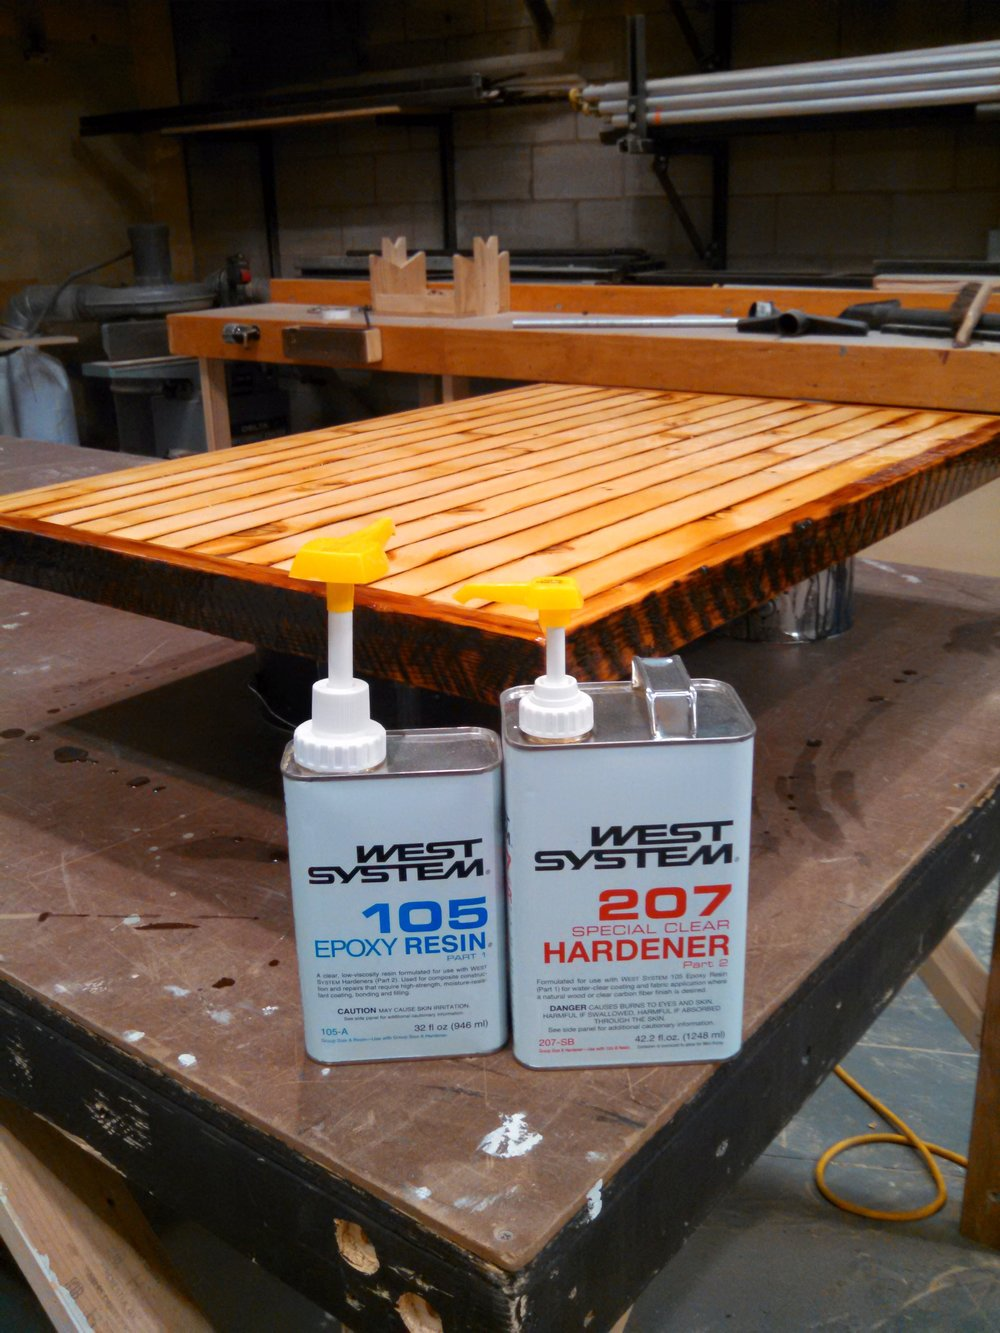 Footrest table top sealed with West System Epoxy.